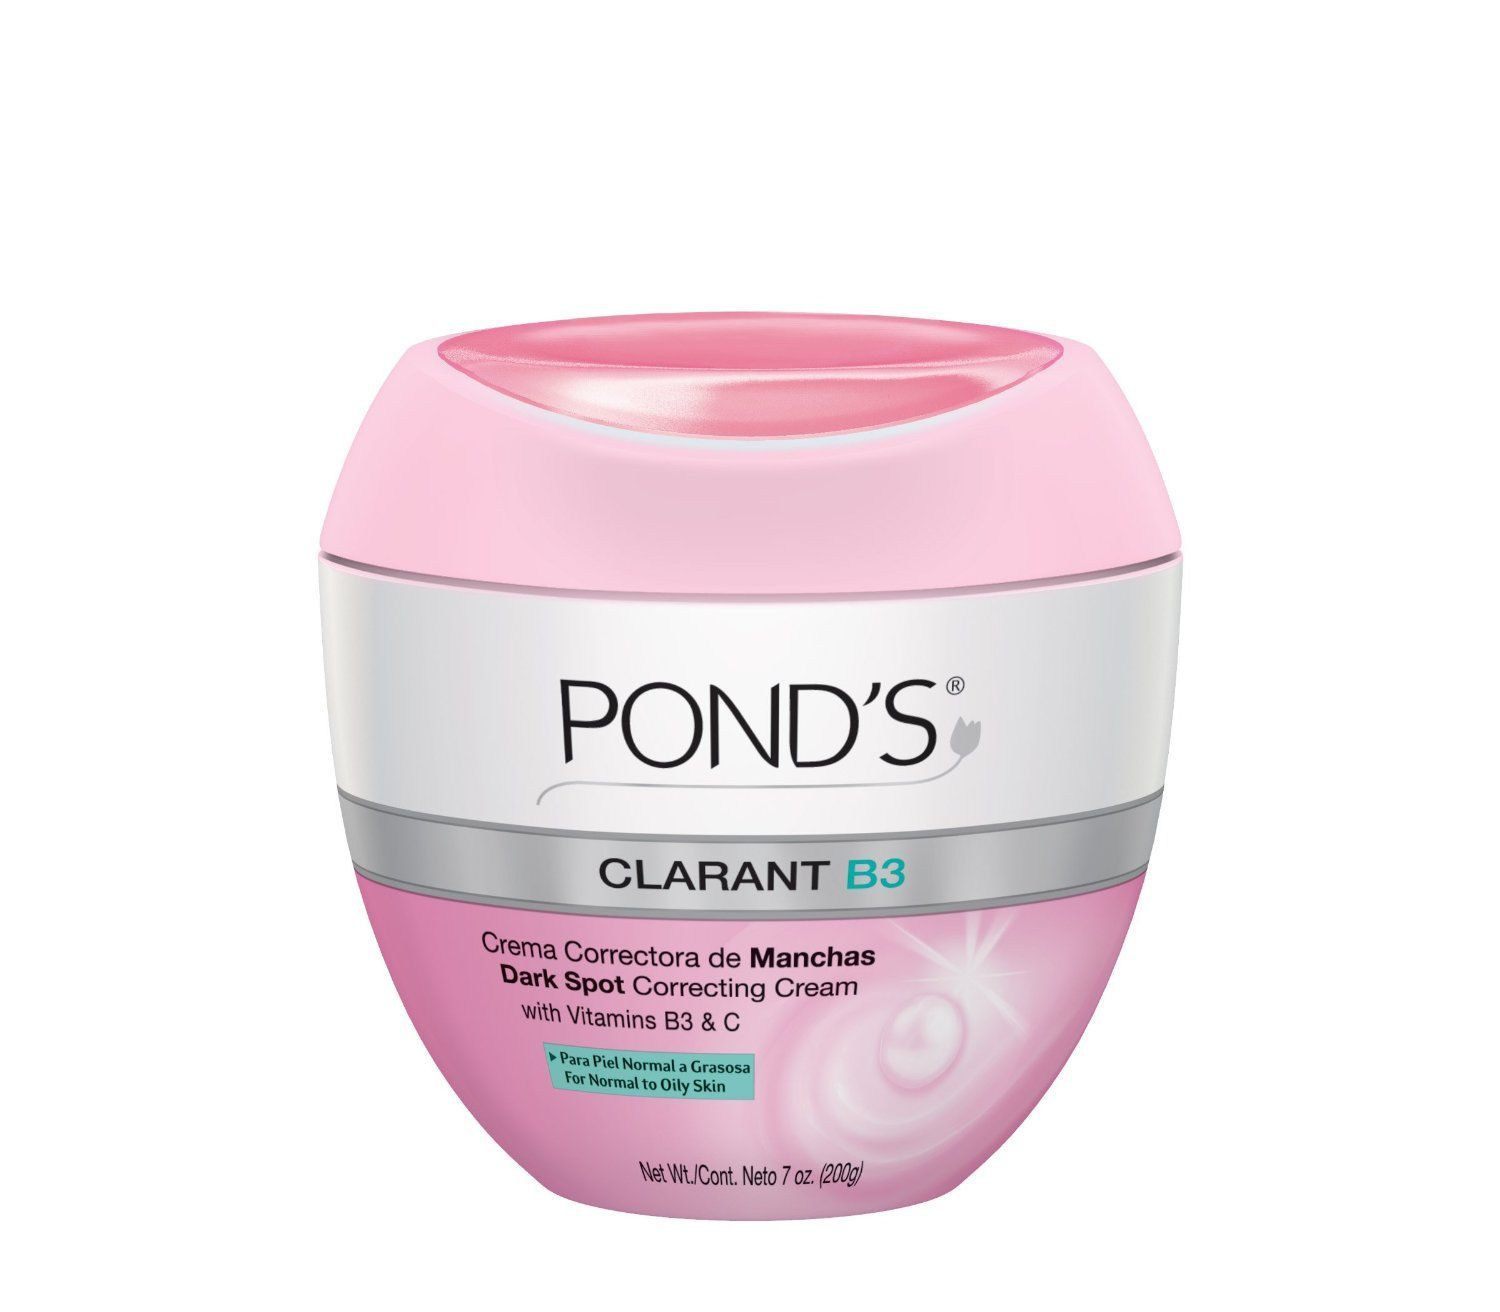 Clarant B3 Normal to Oily Skin